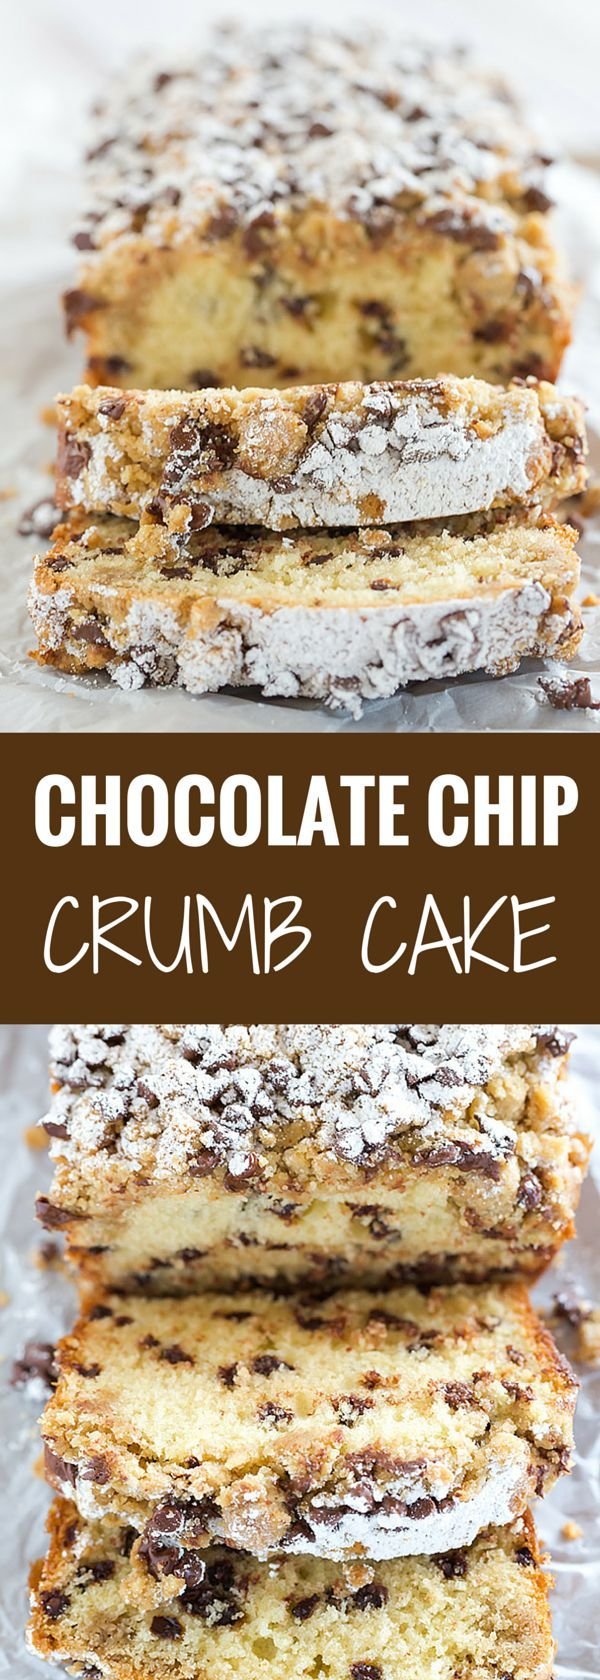 This chocolate chip crumb cake is unbelievably tender, loaded with chocolate…